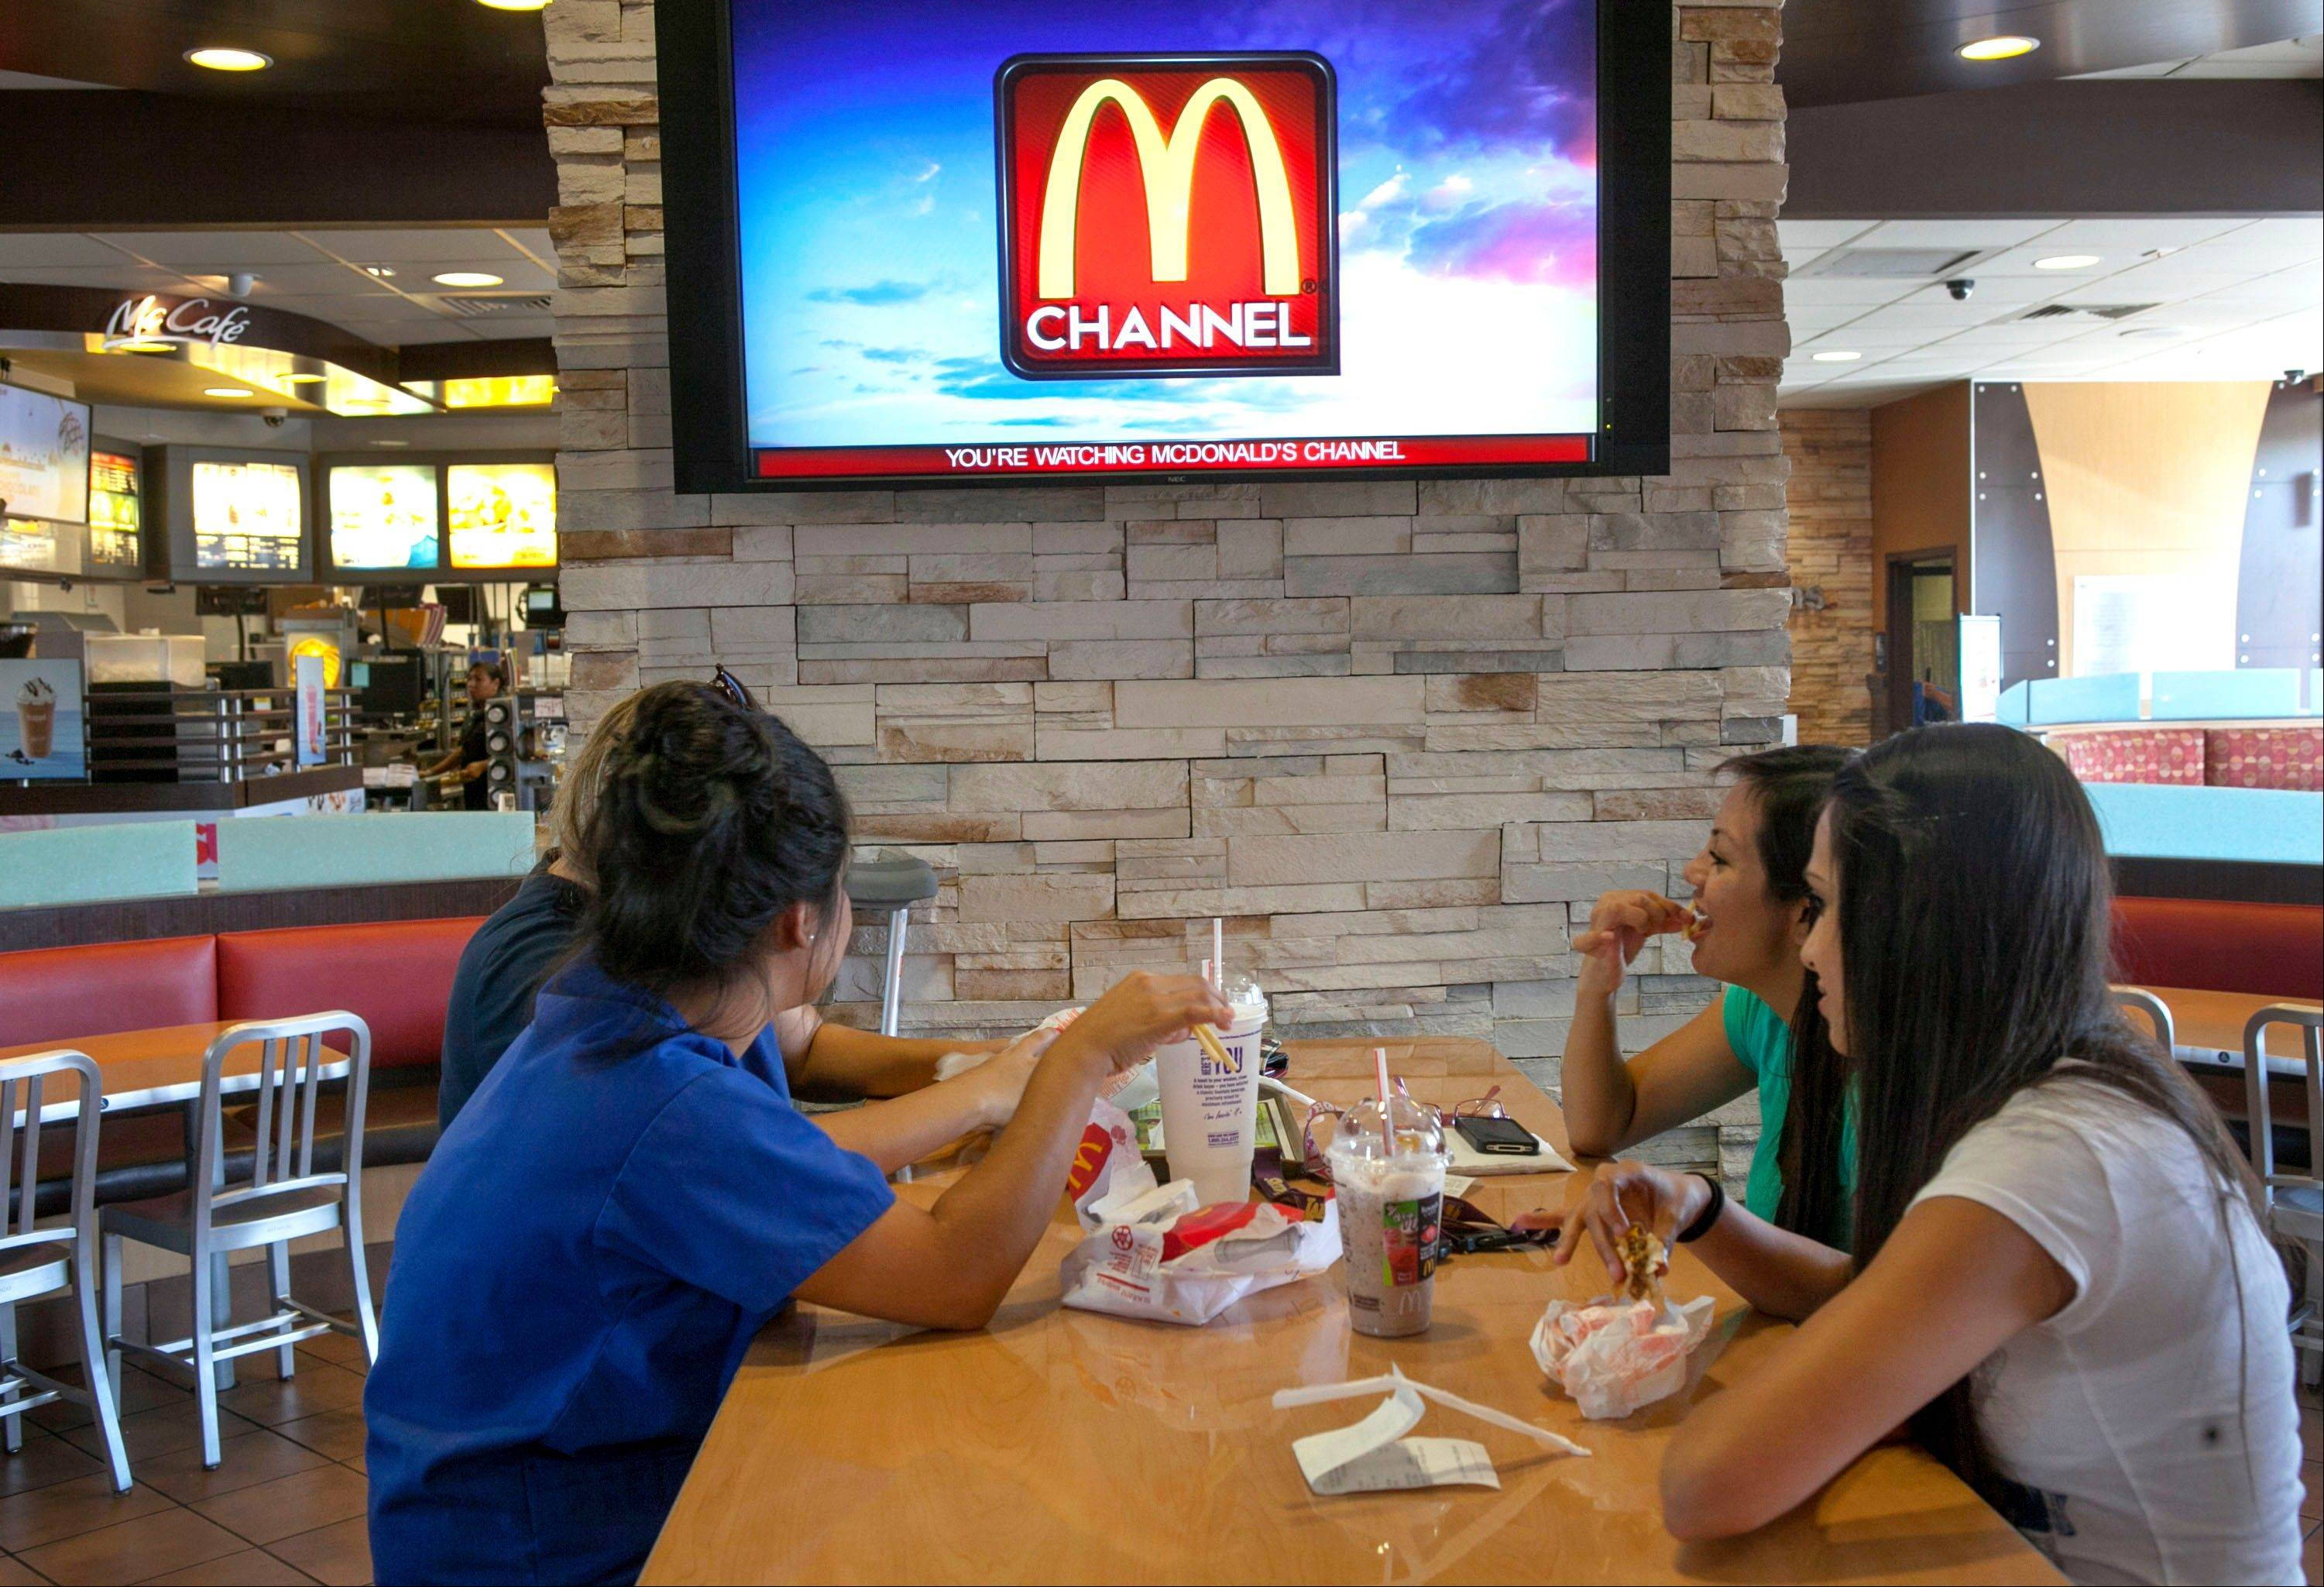 McDonald's patrons watch the new McDonald's television channel at a McDonald's restaurant in Norwalk, Calif. McDonald's is testing its own TV channel in 700 California restaurants in a pilot project that could expand to all the company's restaurants.